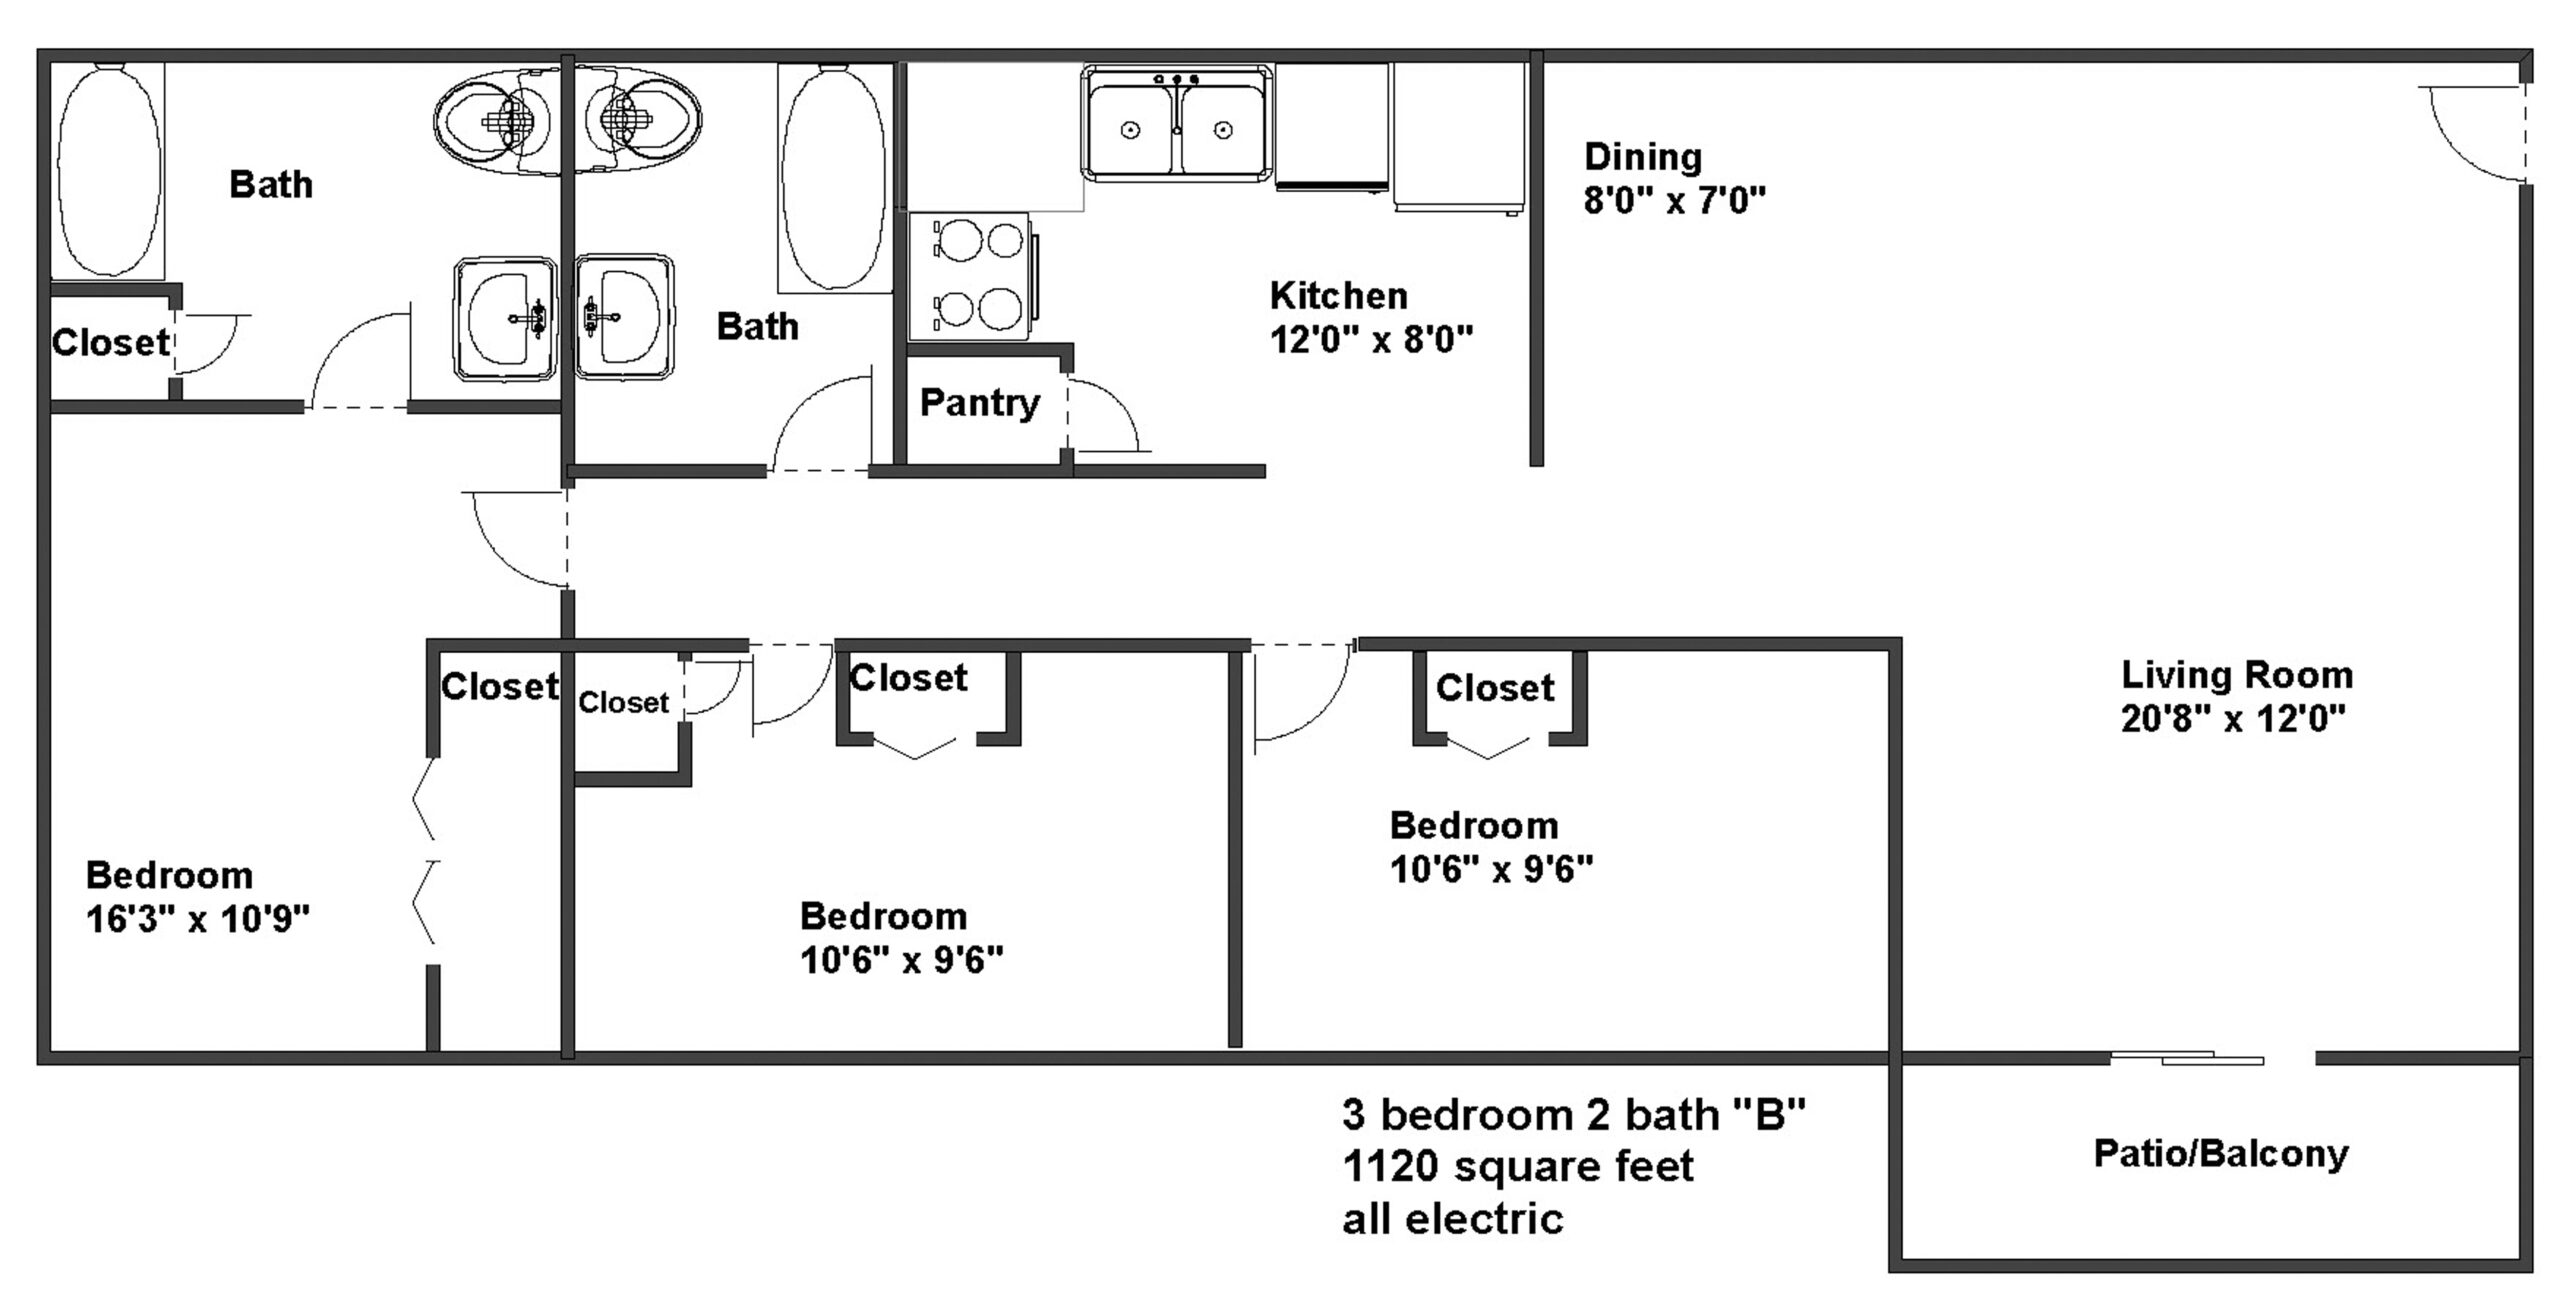 apartments in chapel hill3 bedroom 2 bath floor plan